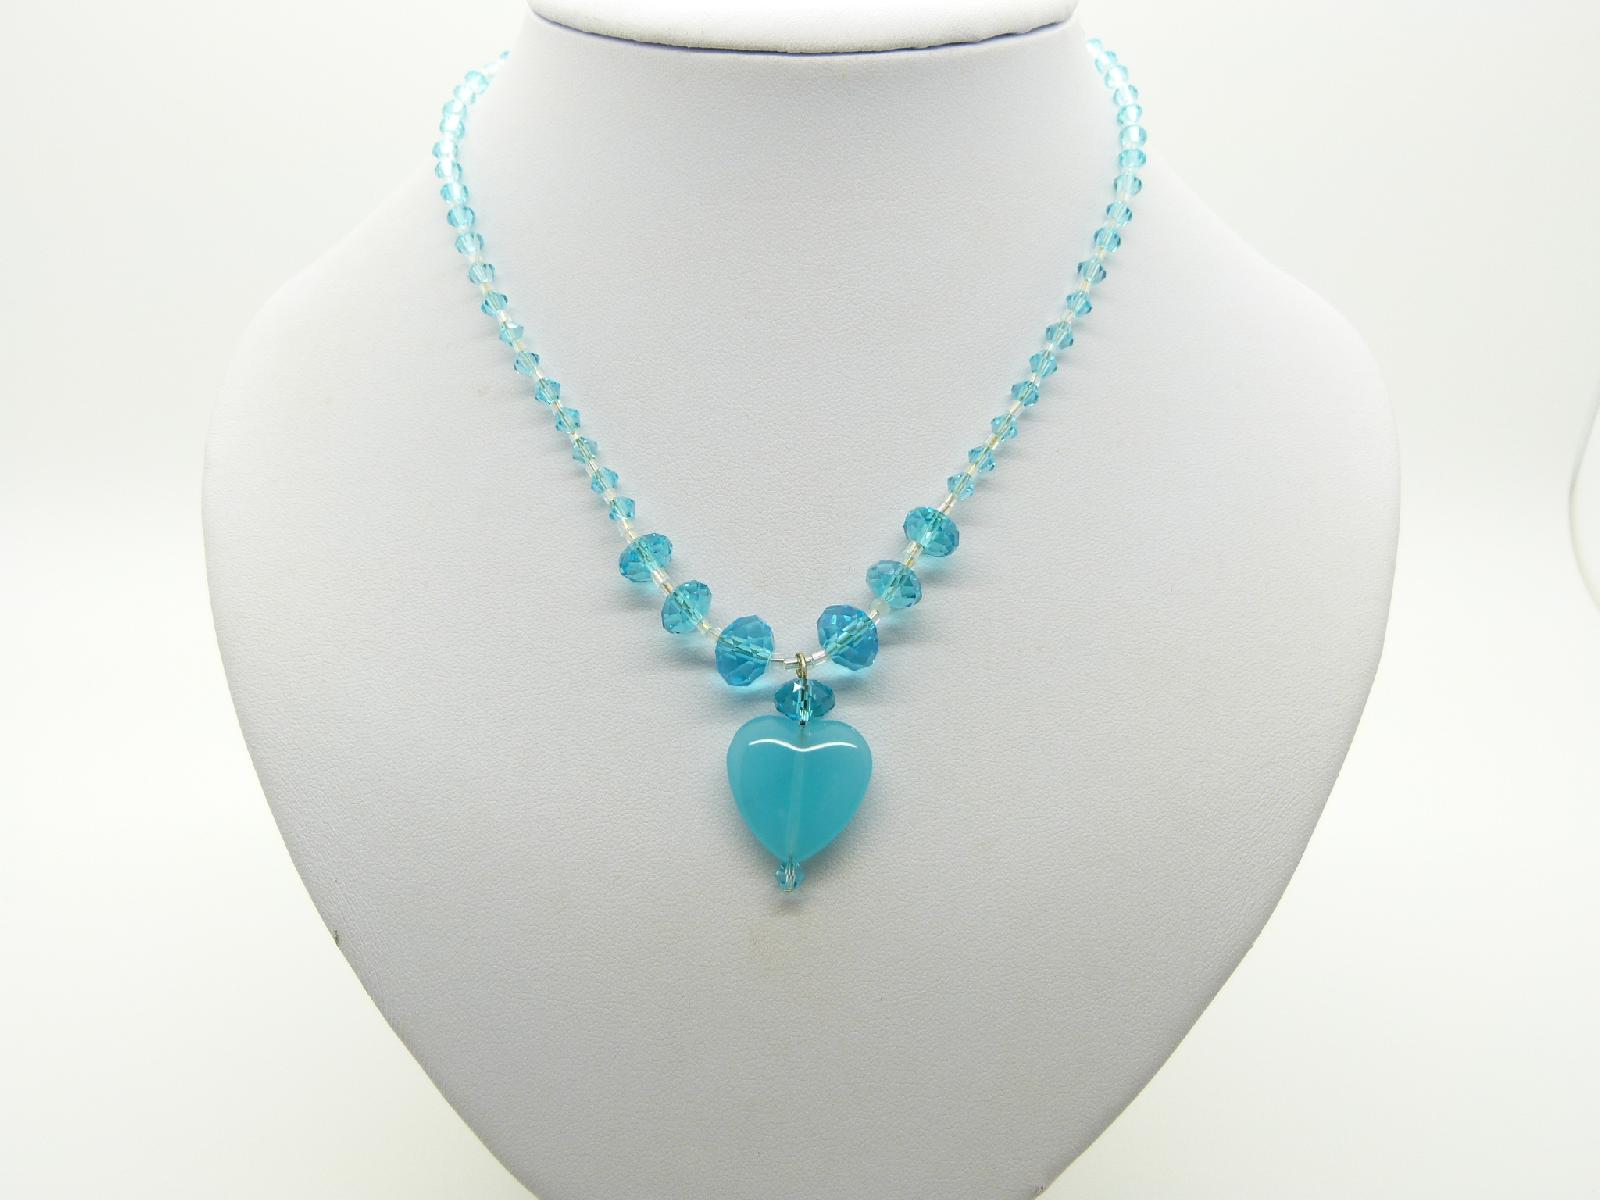 £8.00 - Vintage Redesigned Aqua Blue Crystal Bead Necklace Glass Heart Pendant